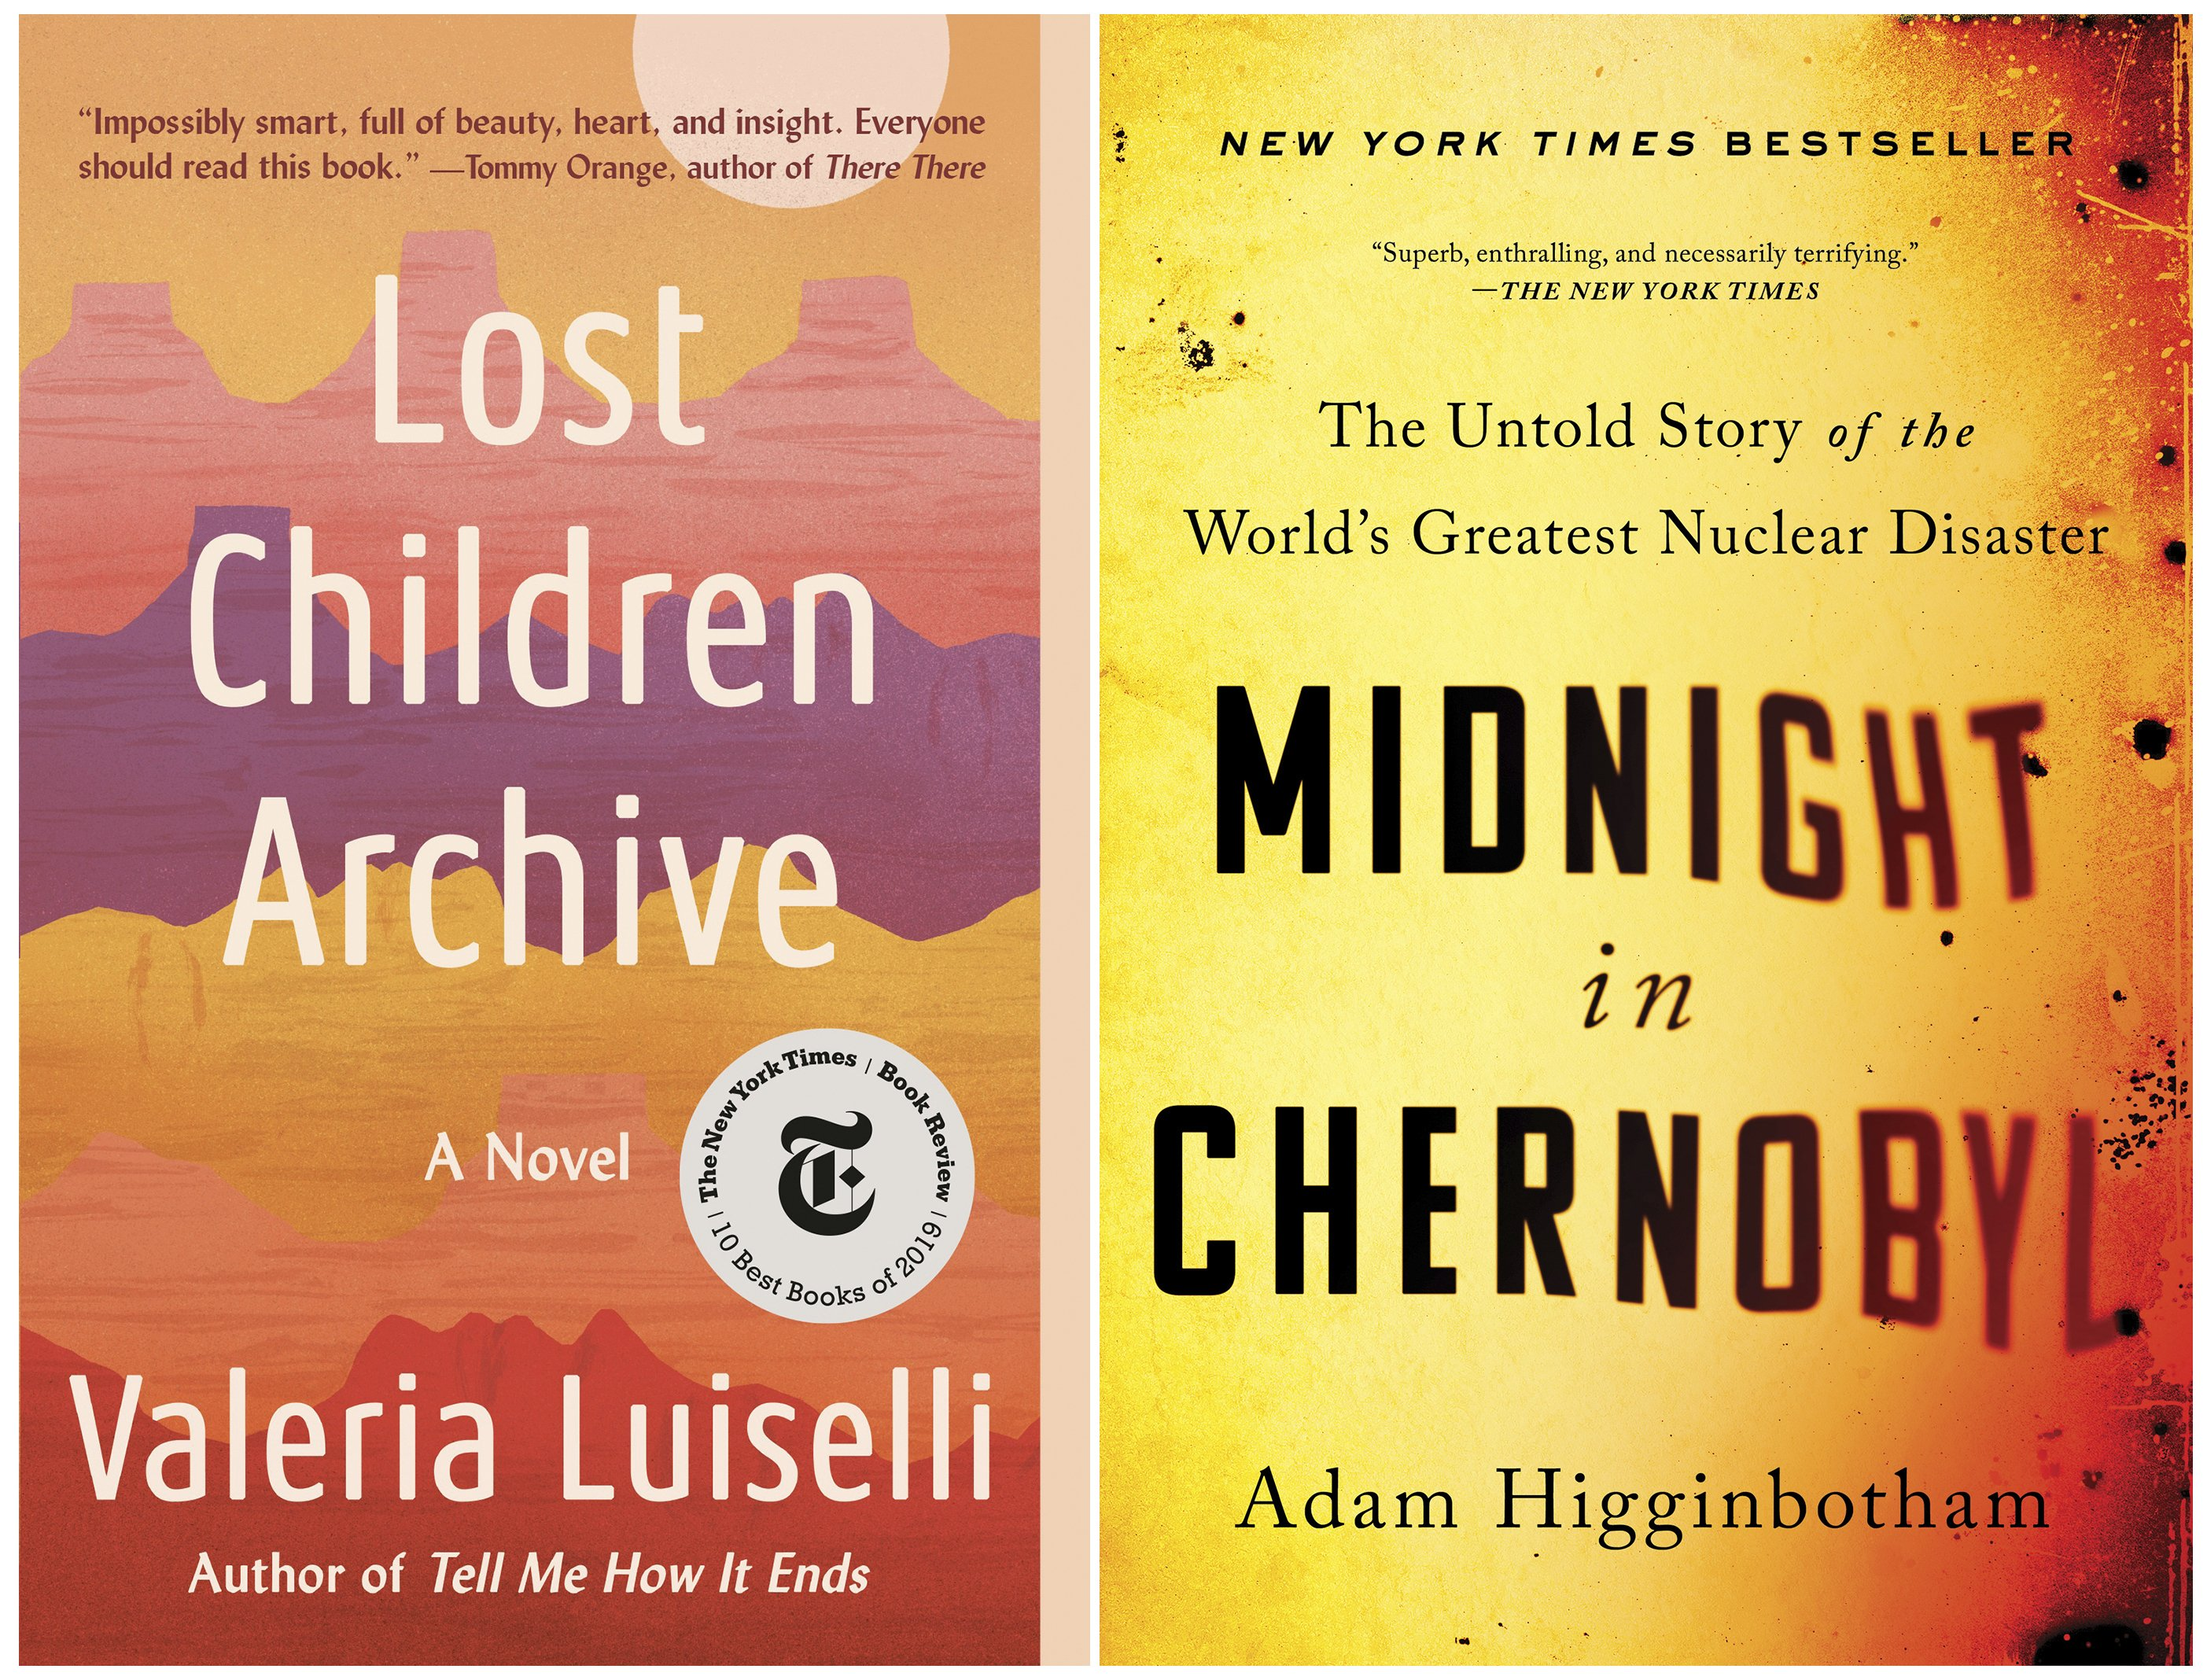 Librarians honor books by Luiselli and Higginbotham